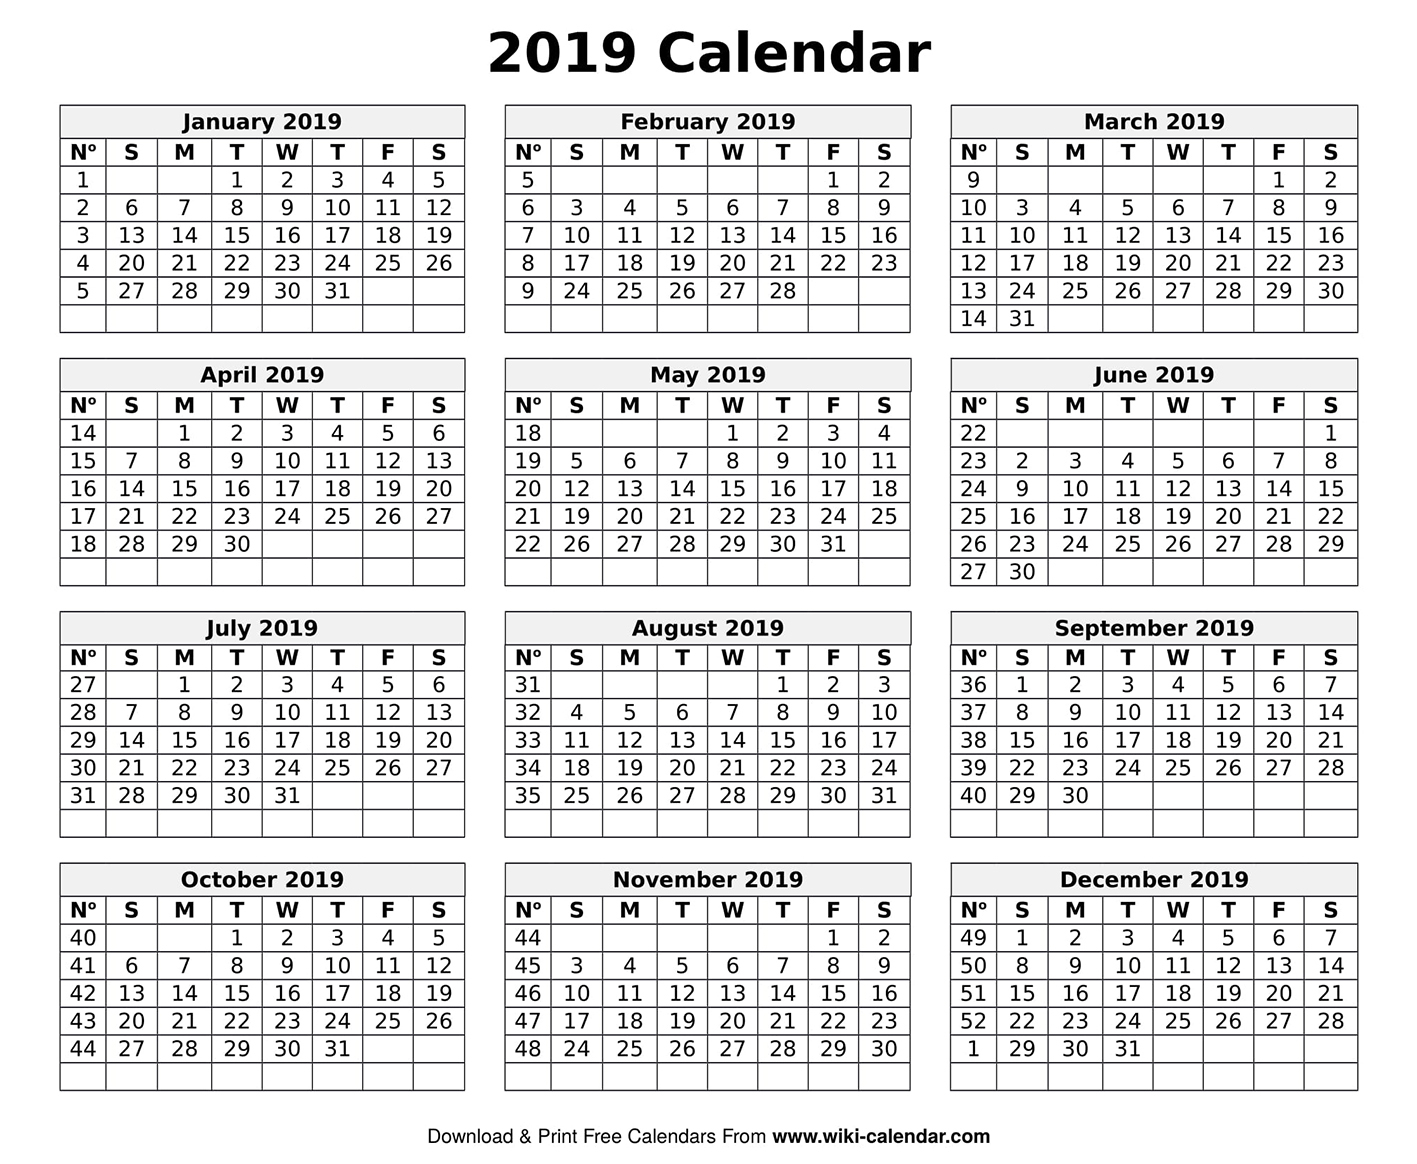 Printable Blank 2019 Calendar Templates in Free Printable Blank Calendar August-December